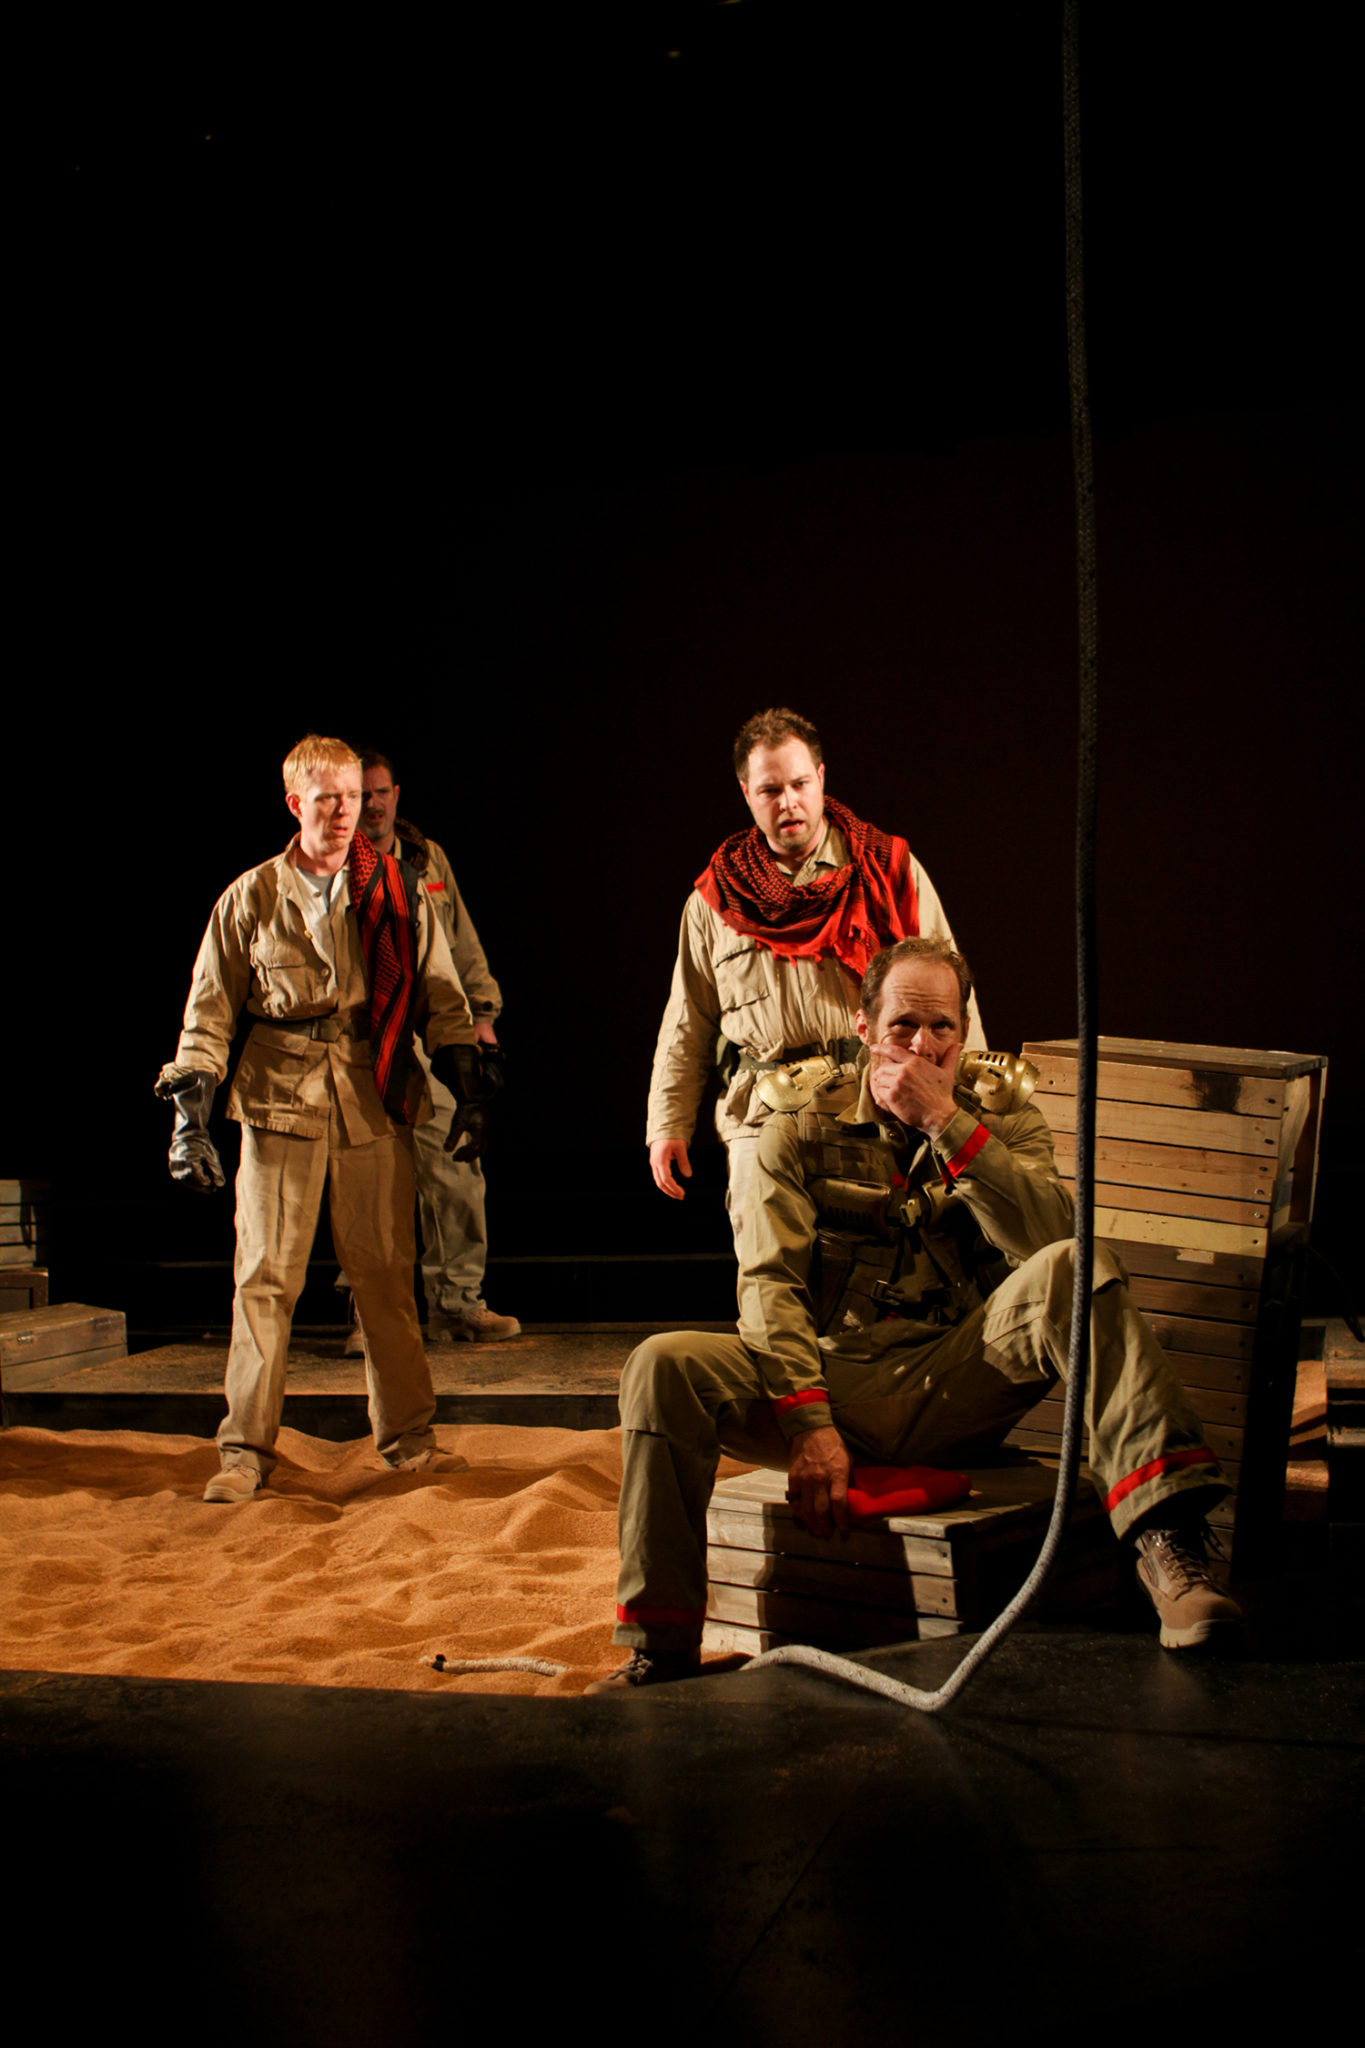 """Justin Alley as soldier, Alex Matthews as Eros, and Hans Altwies as Mark Antony in Seattle Shakespeare Company's 2012 production of """"Antony and Cleopatra."""" Photo by John Ulman."""